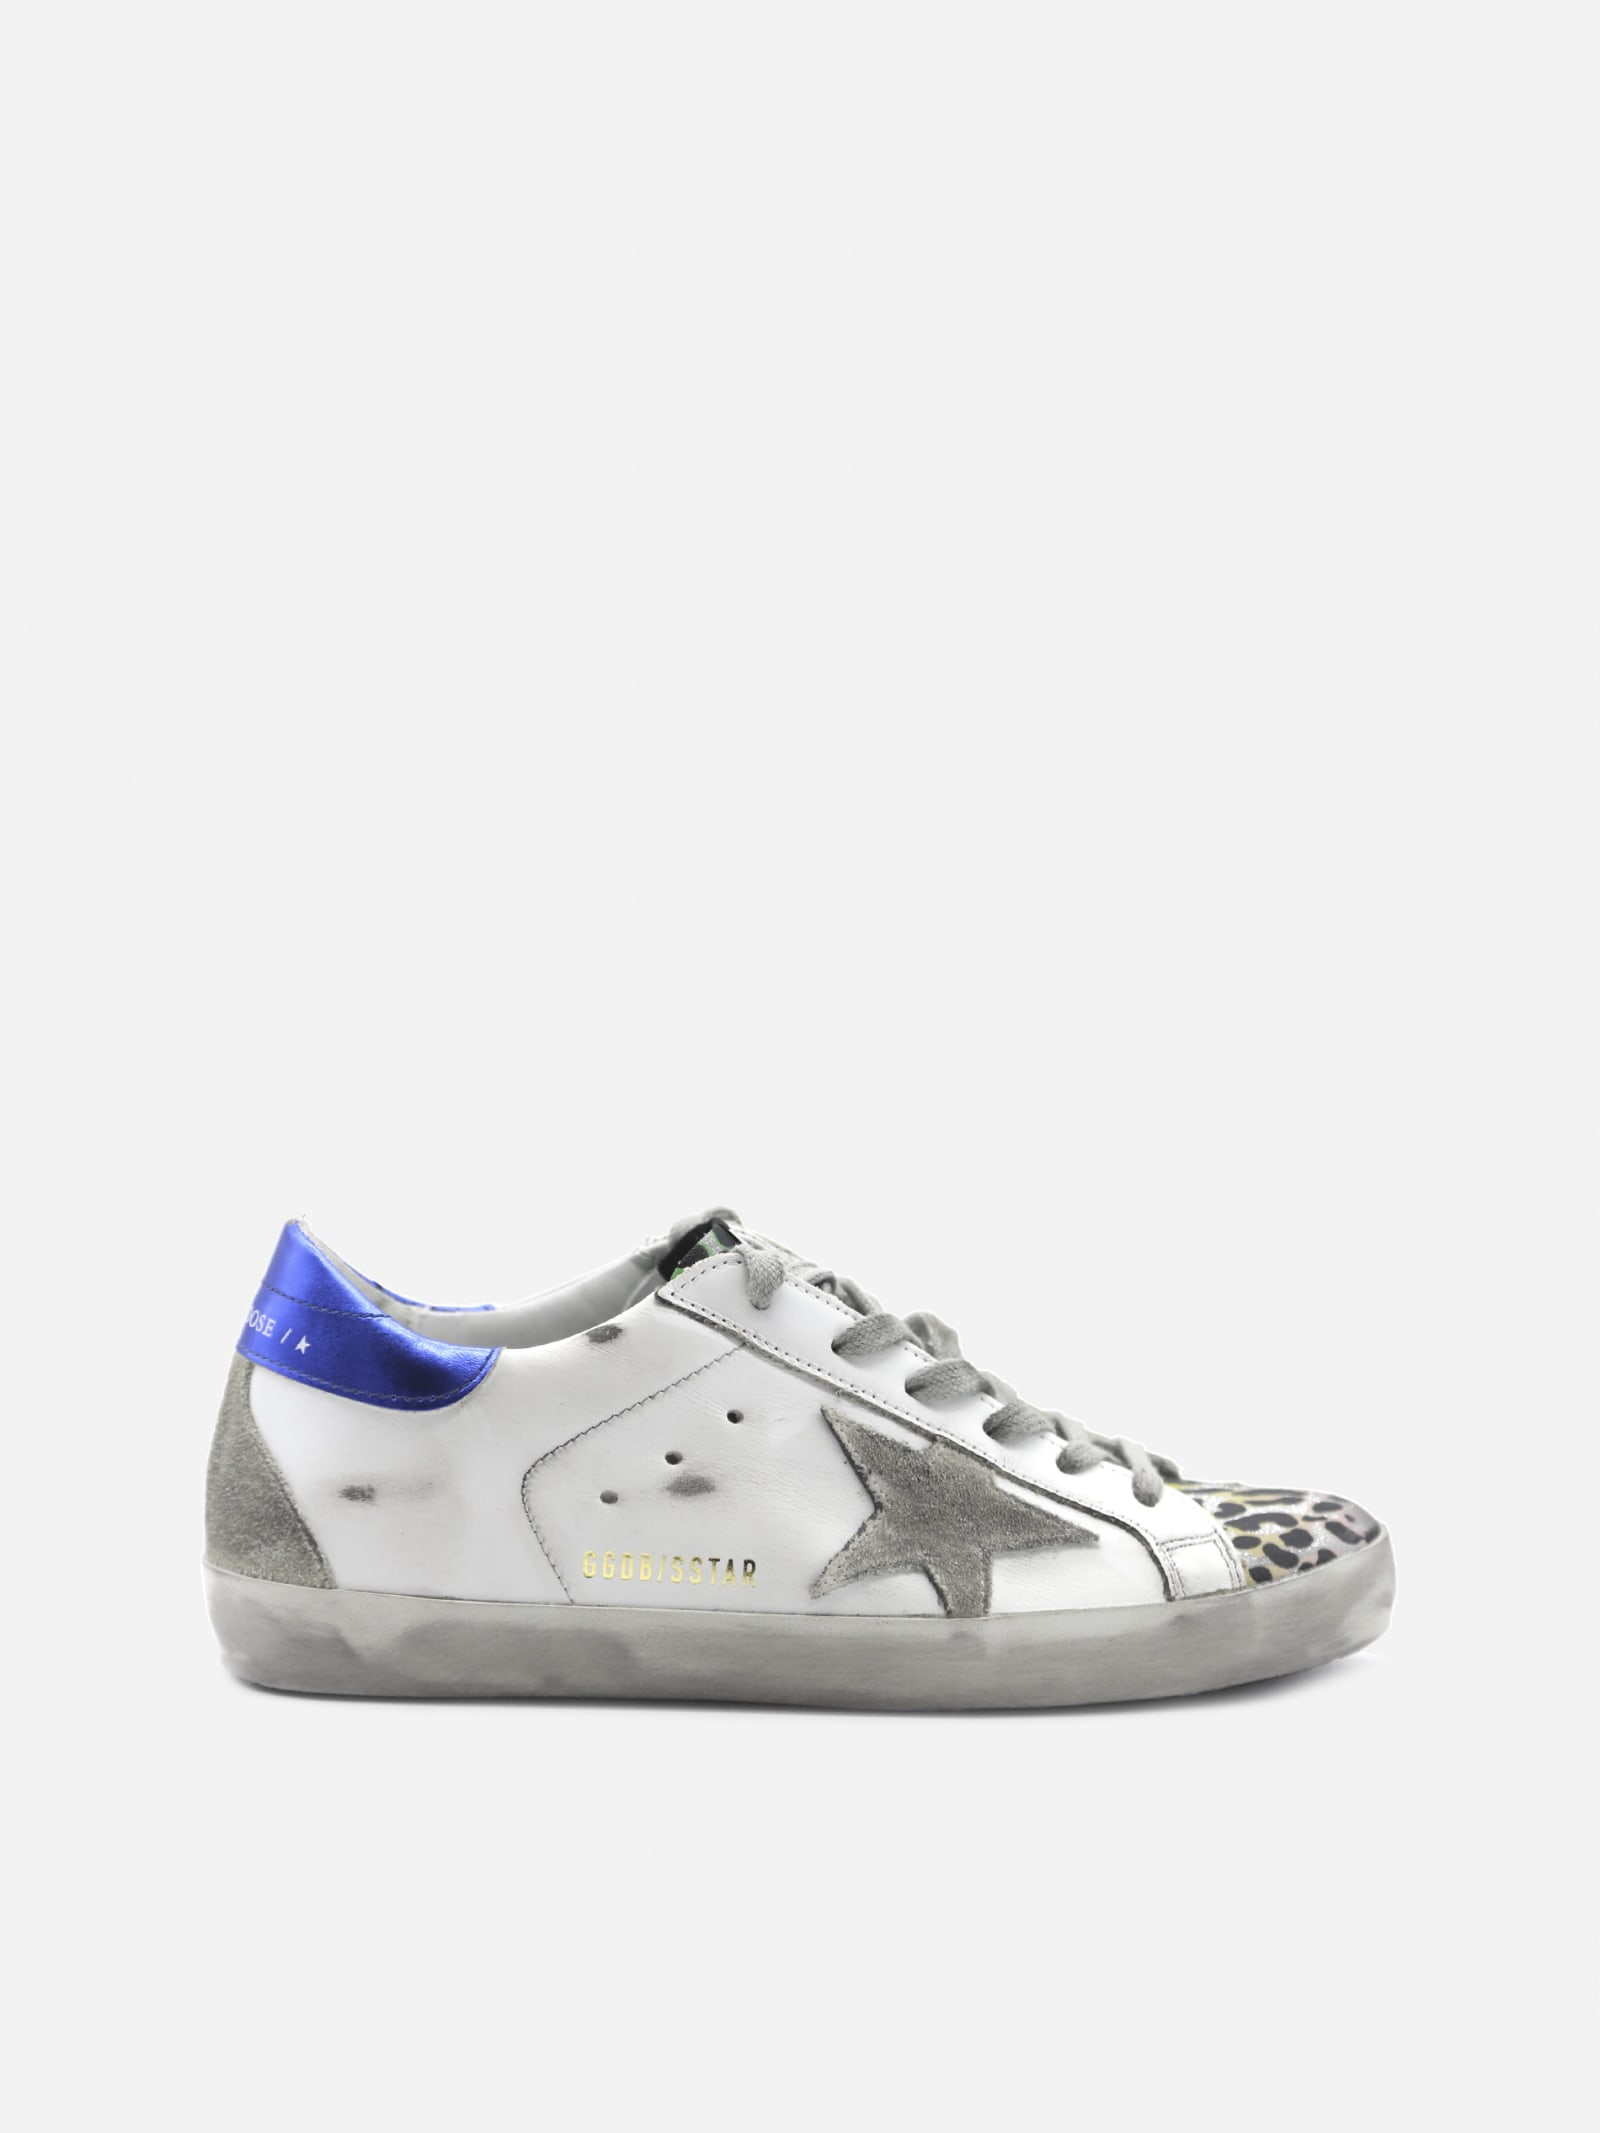 Golden Goose Superstar Sneakers In Leather With Laminated Effect Heel Tab